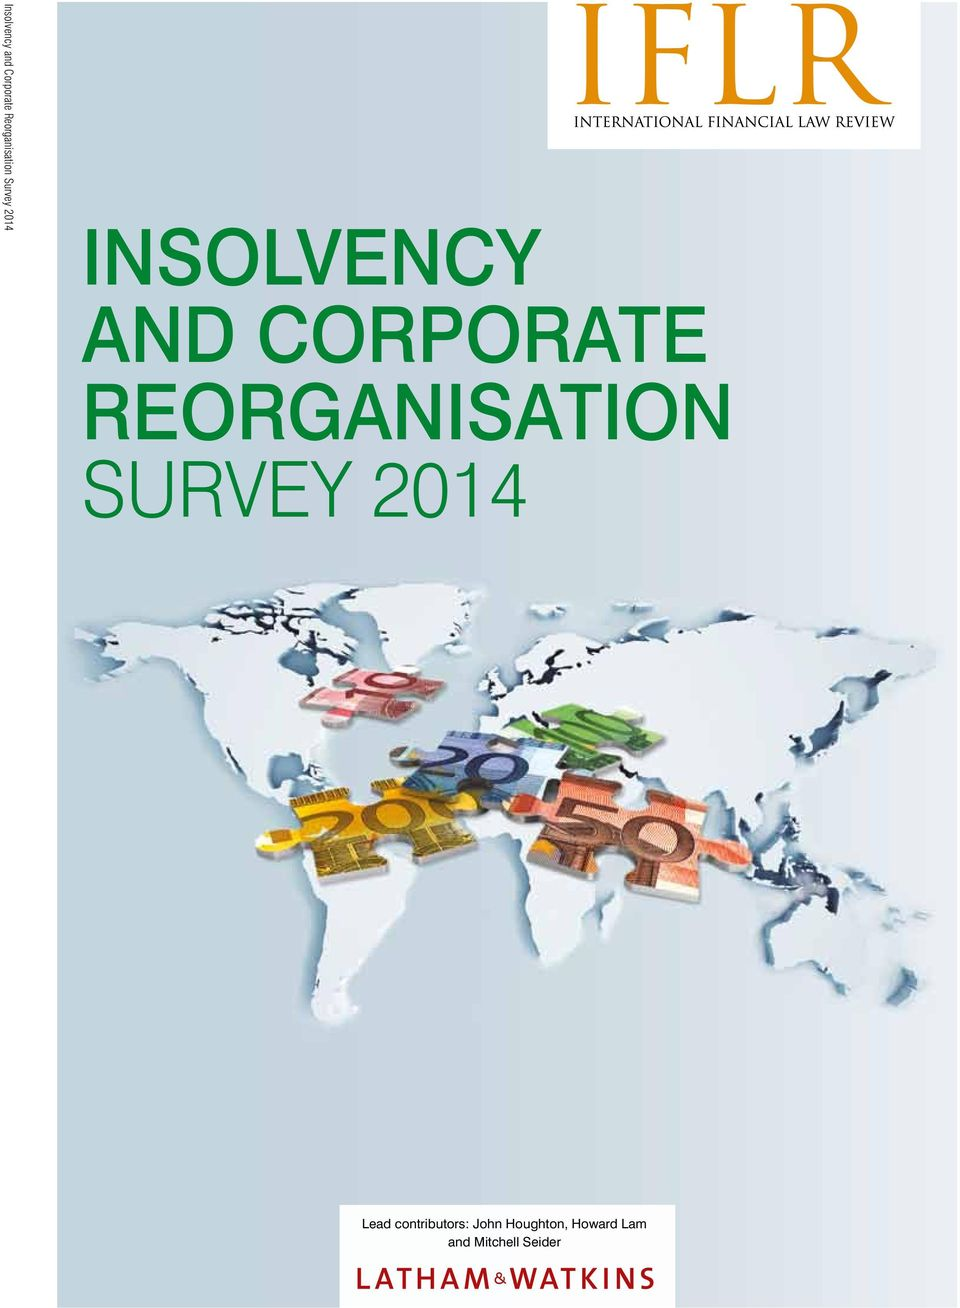 REORGANISATION Survey 2014 Lead